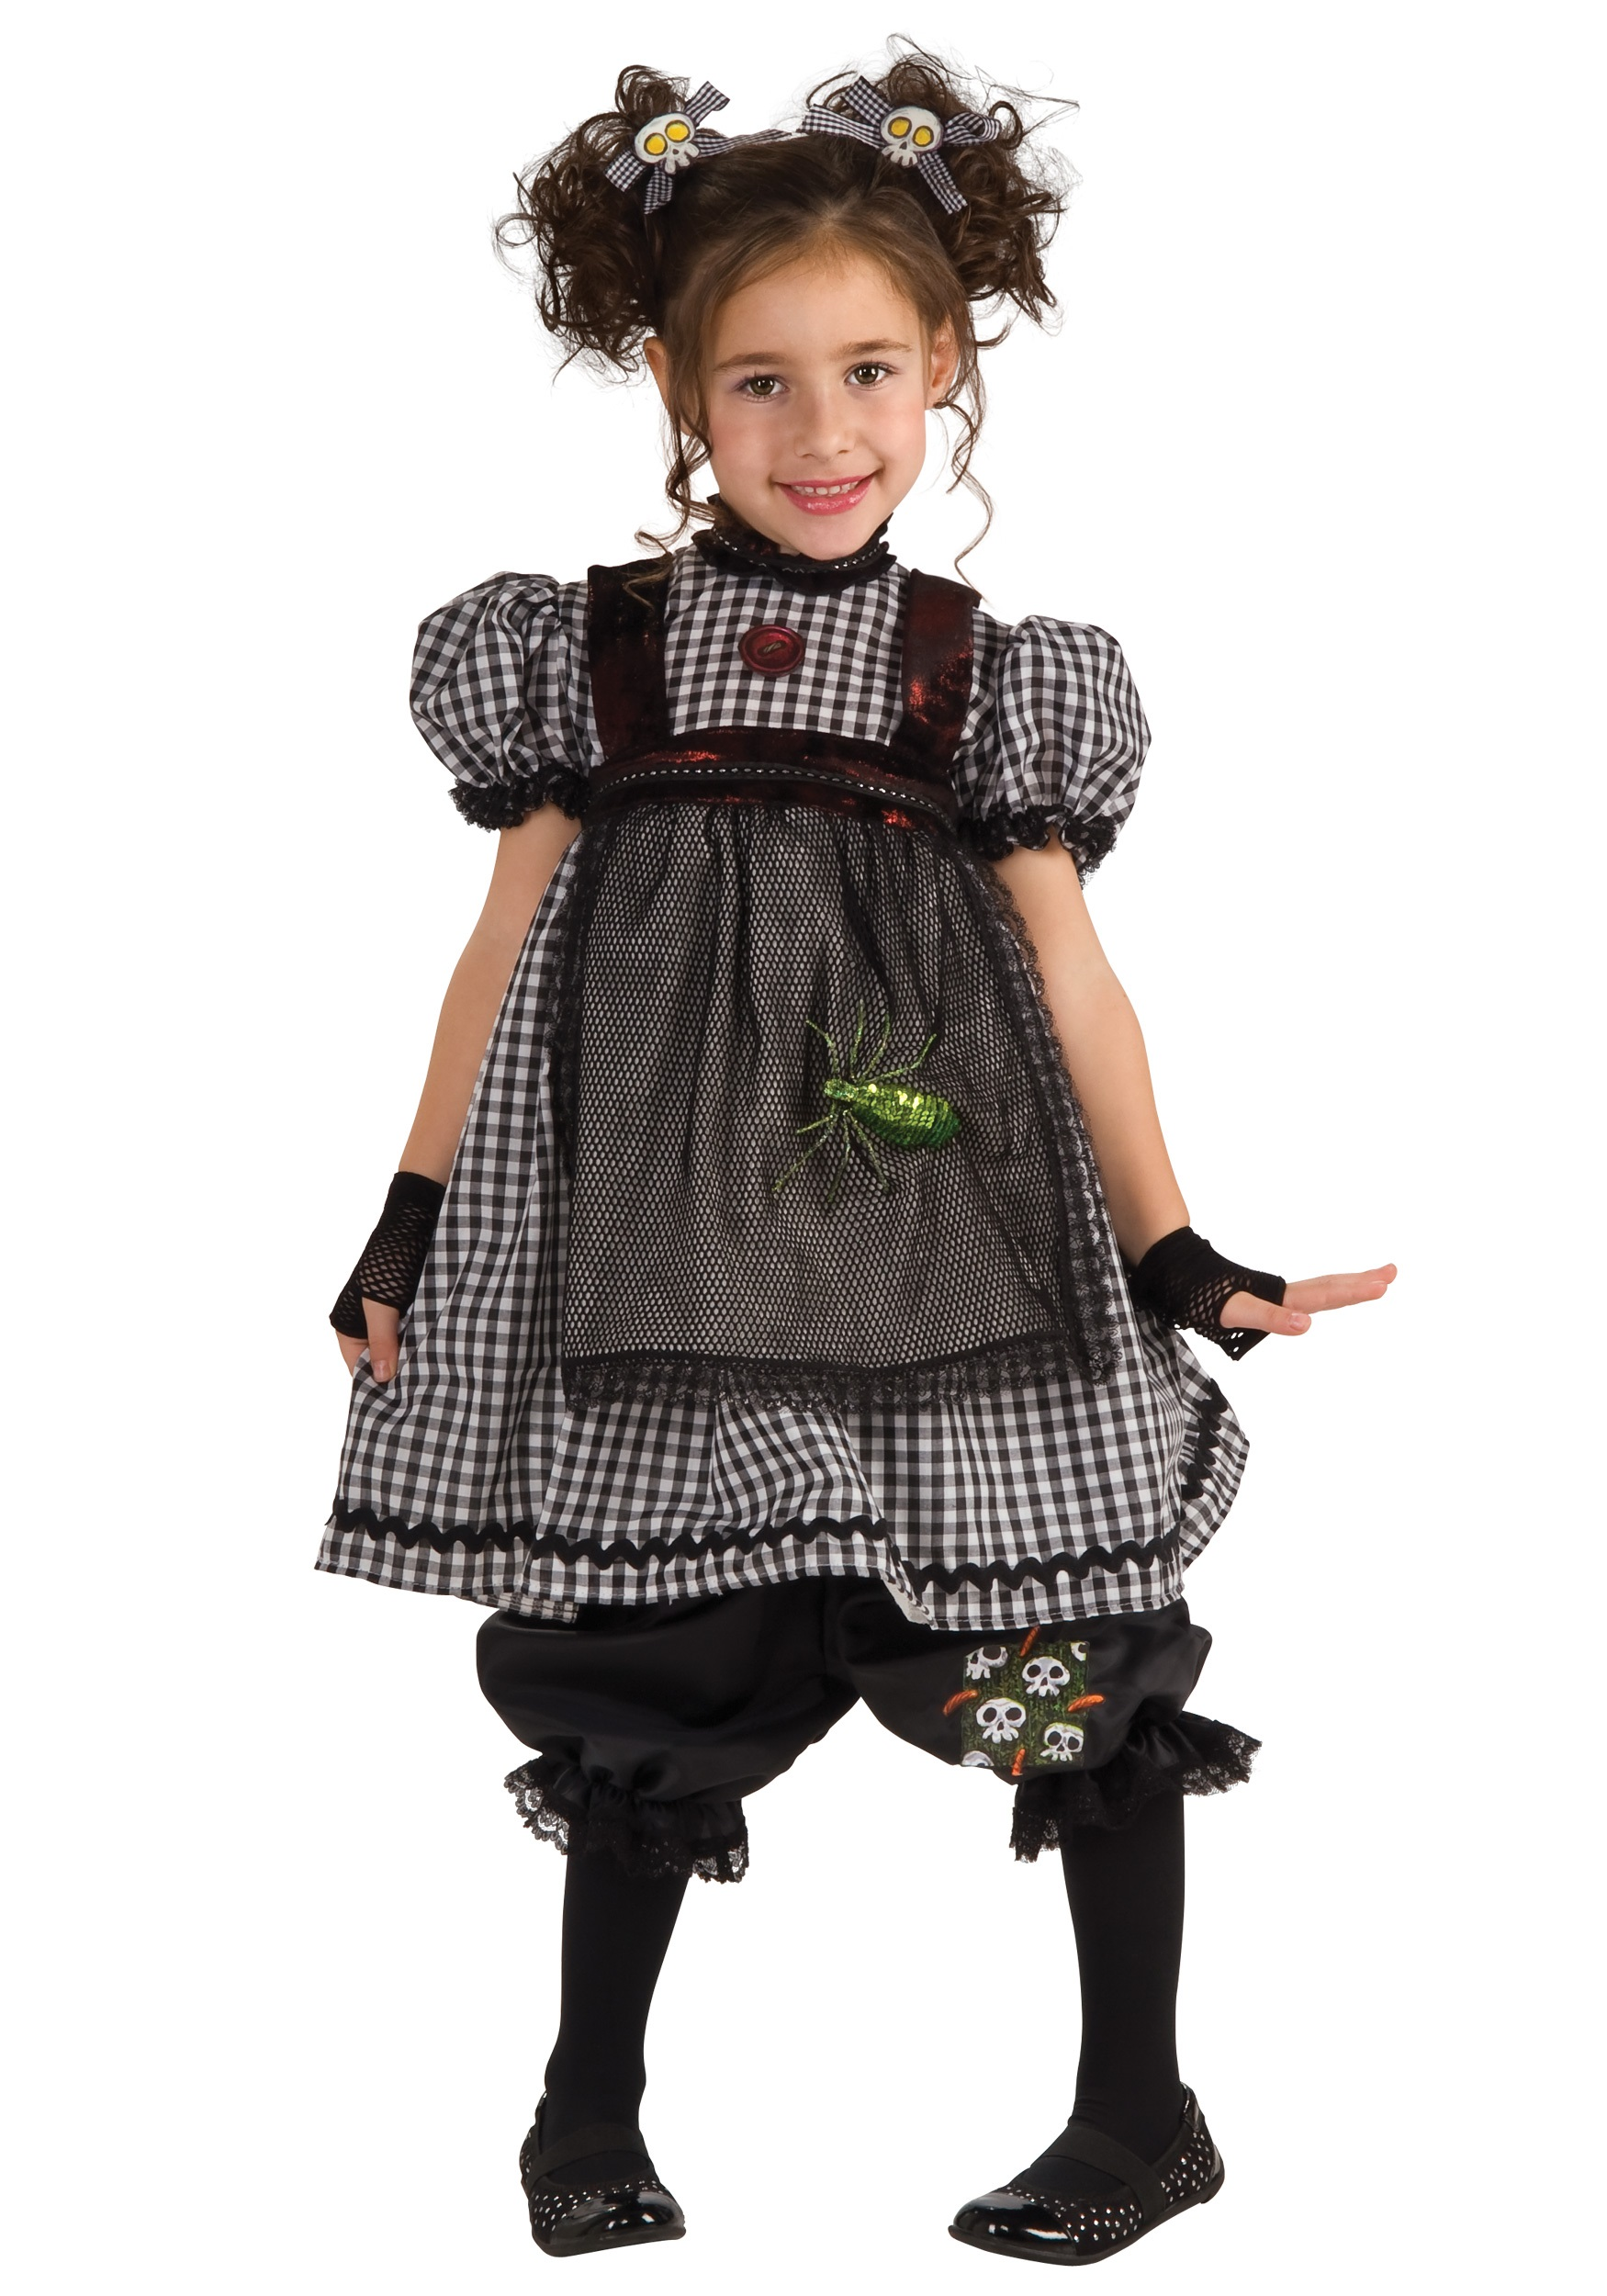 Child Gothic Rag Doll Costume  sc 1 st  Halloween Costumes & Child Gothic Rag Doll Costume - Halloween Costume Ideas 2018